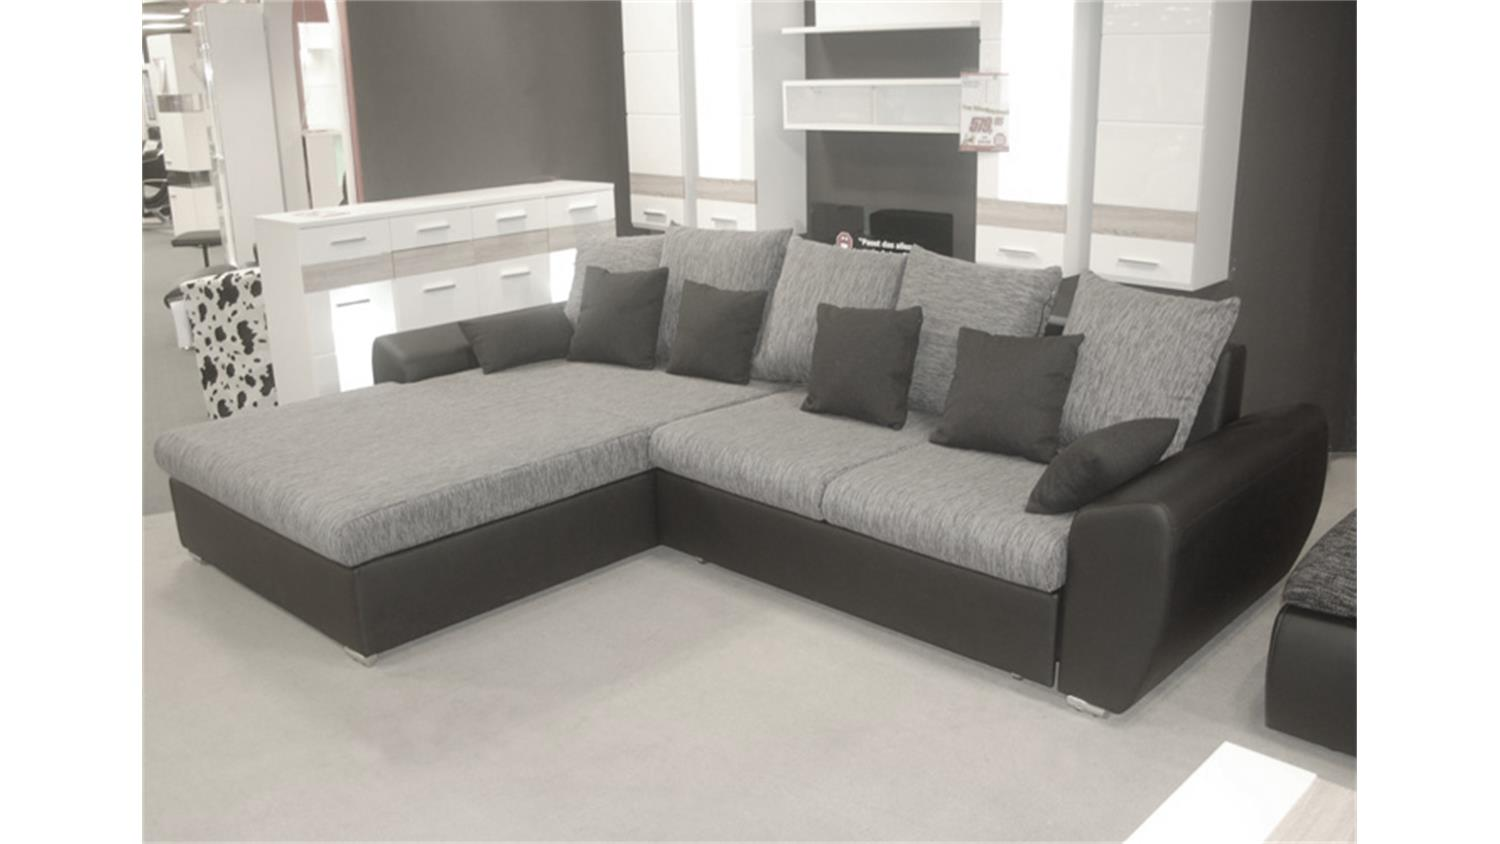 ecksofa ricardo schwarz grau mit schlaffunktion. Black Bedroom Furniture Sets. Home Design Ideas